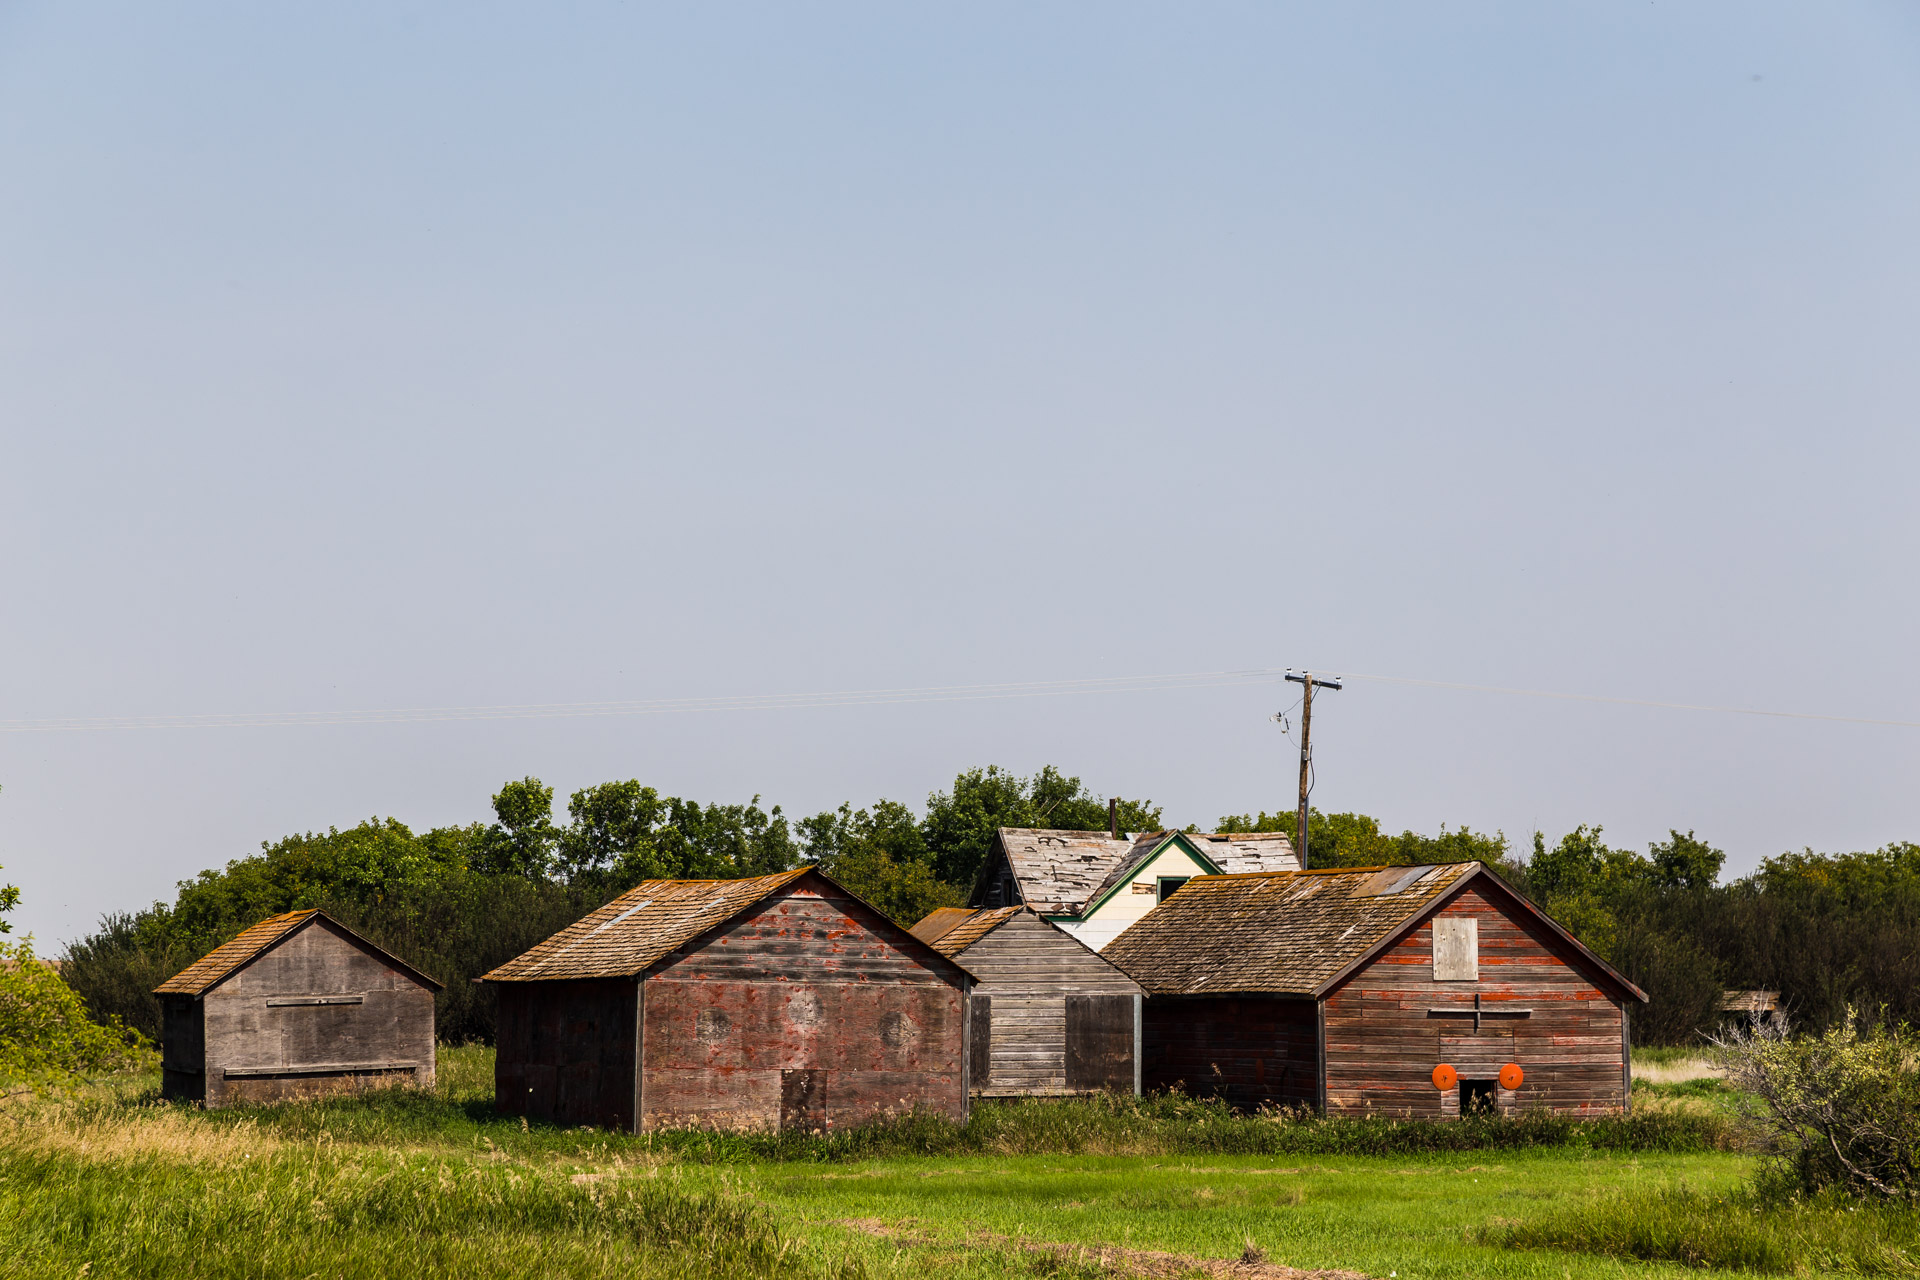 A Collection Of Barns (left angle mid)